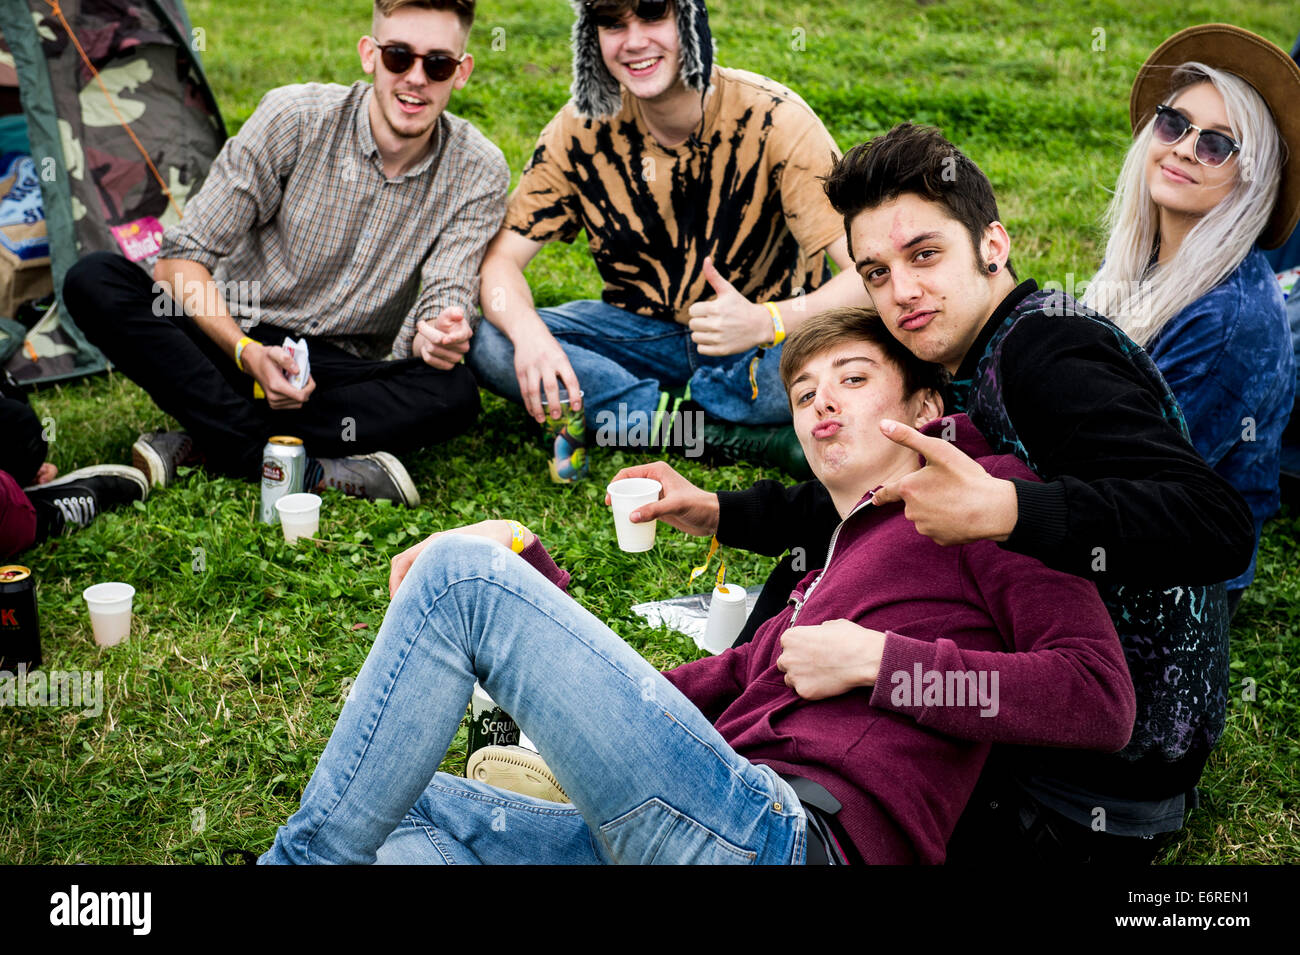 Stow Maries, UK. 29th August 2014. Young festivalgoers at the Brownstock Festival. The festival celebrates it's - Stock Image